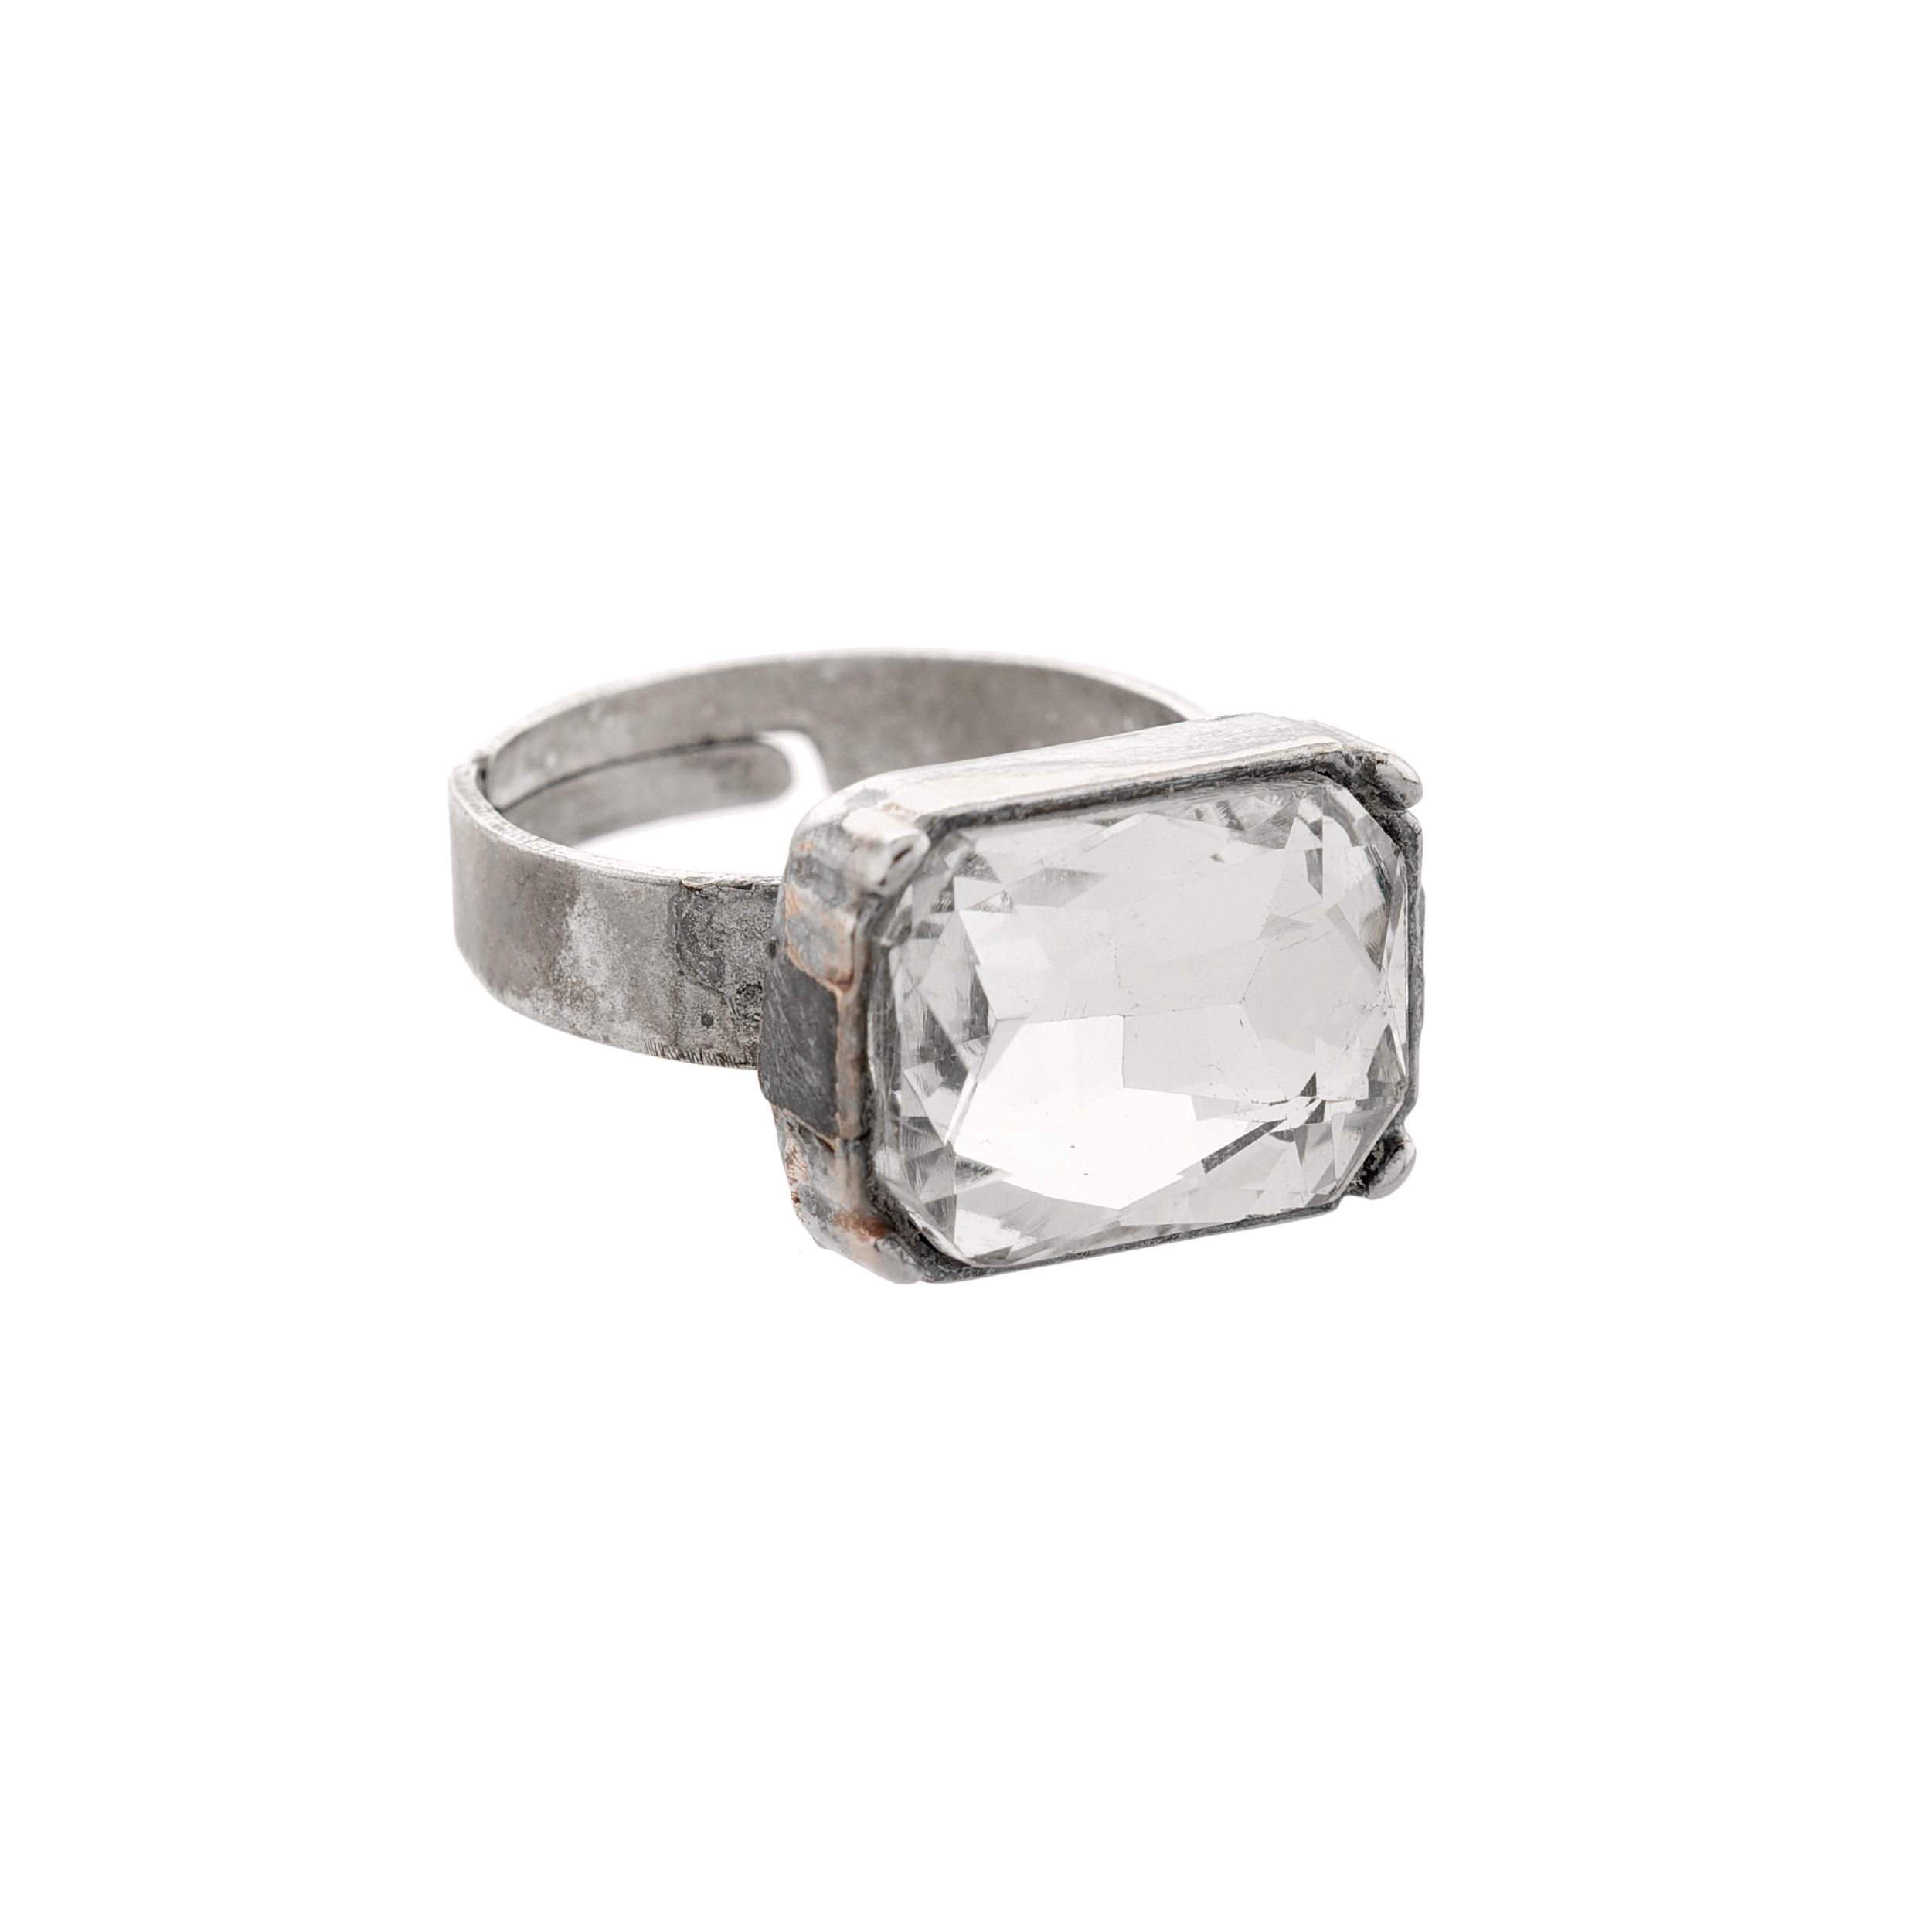 Moonlight crystal square stoned ring